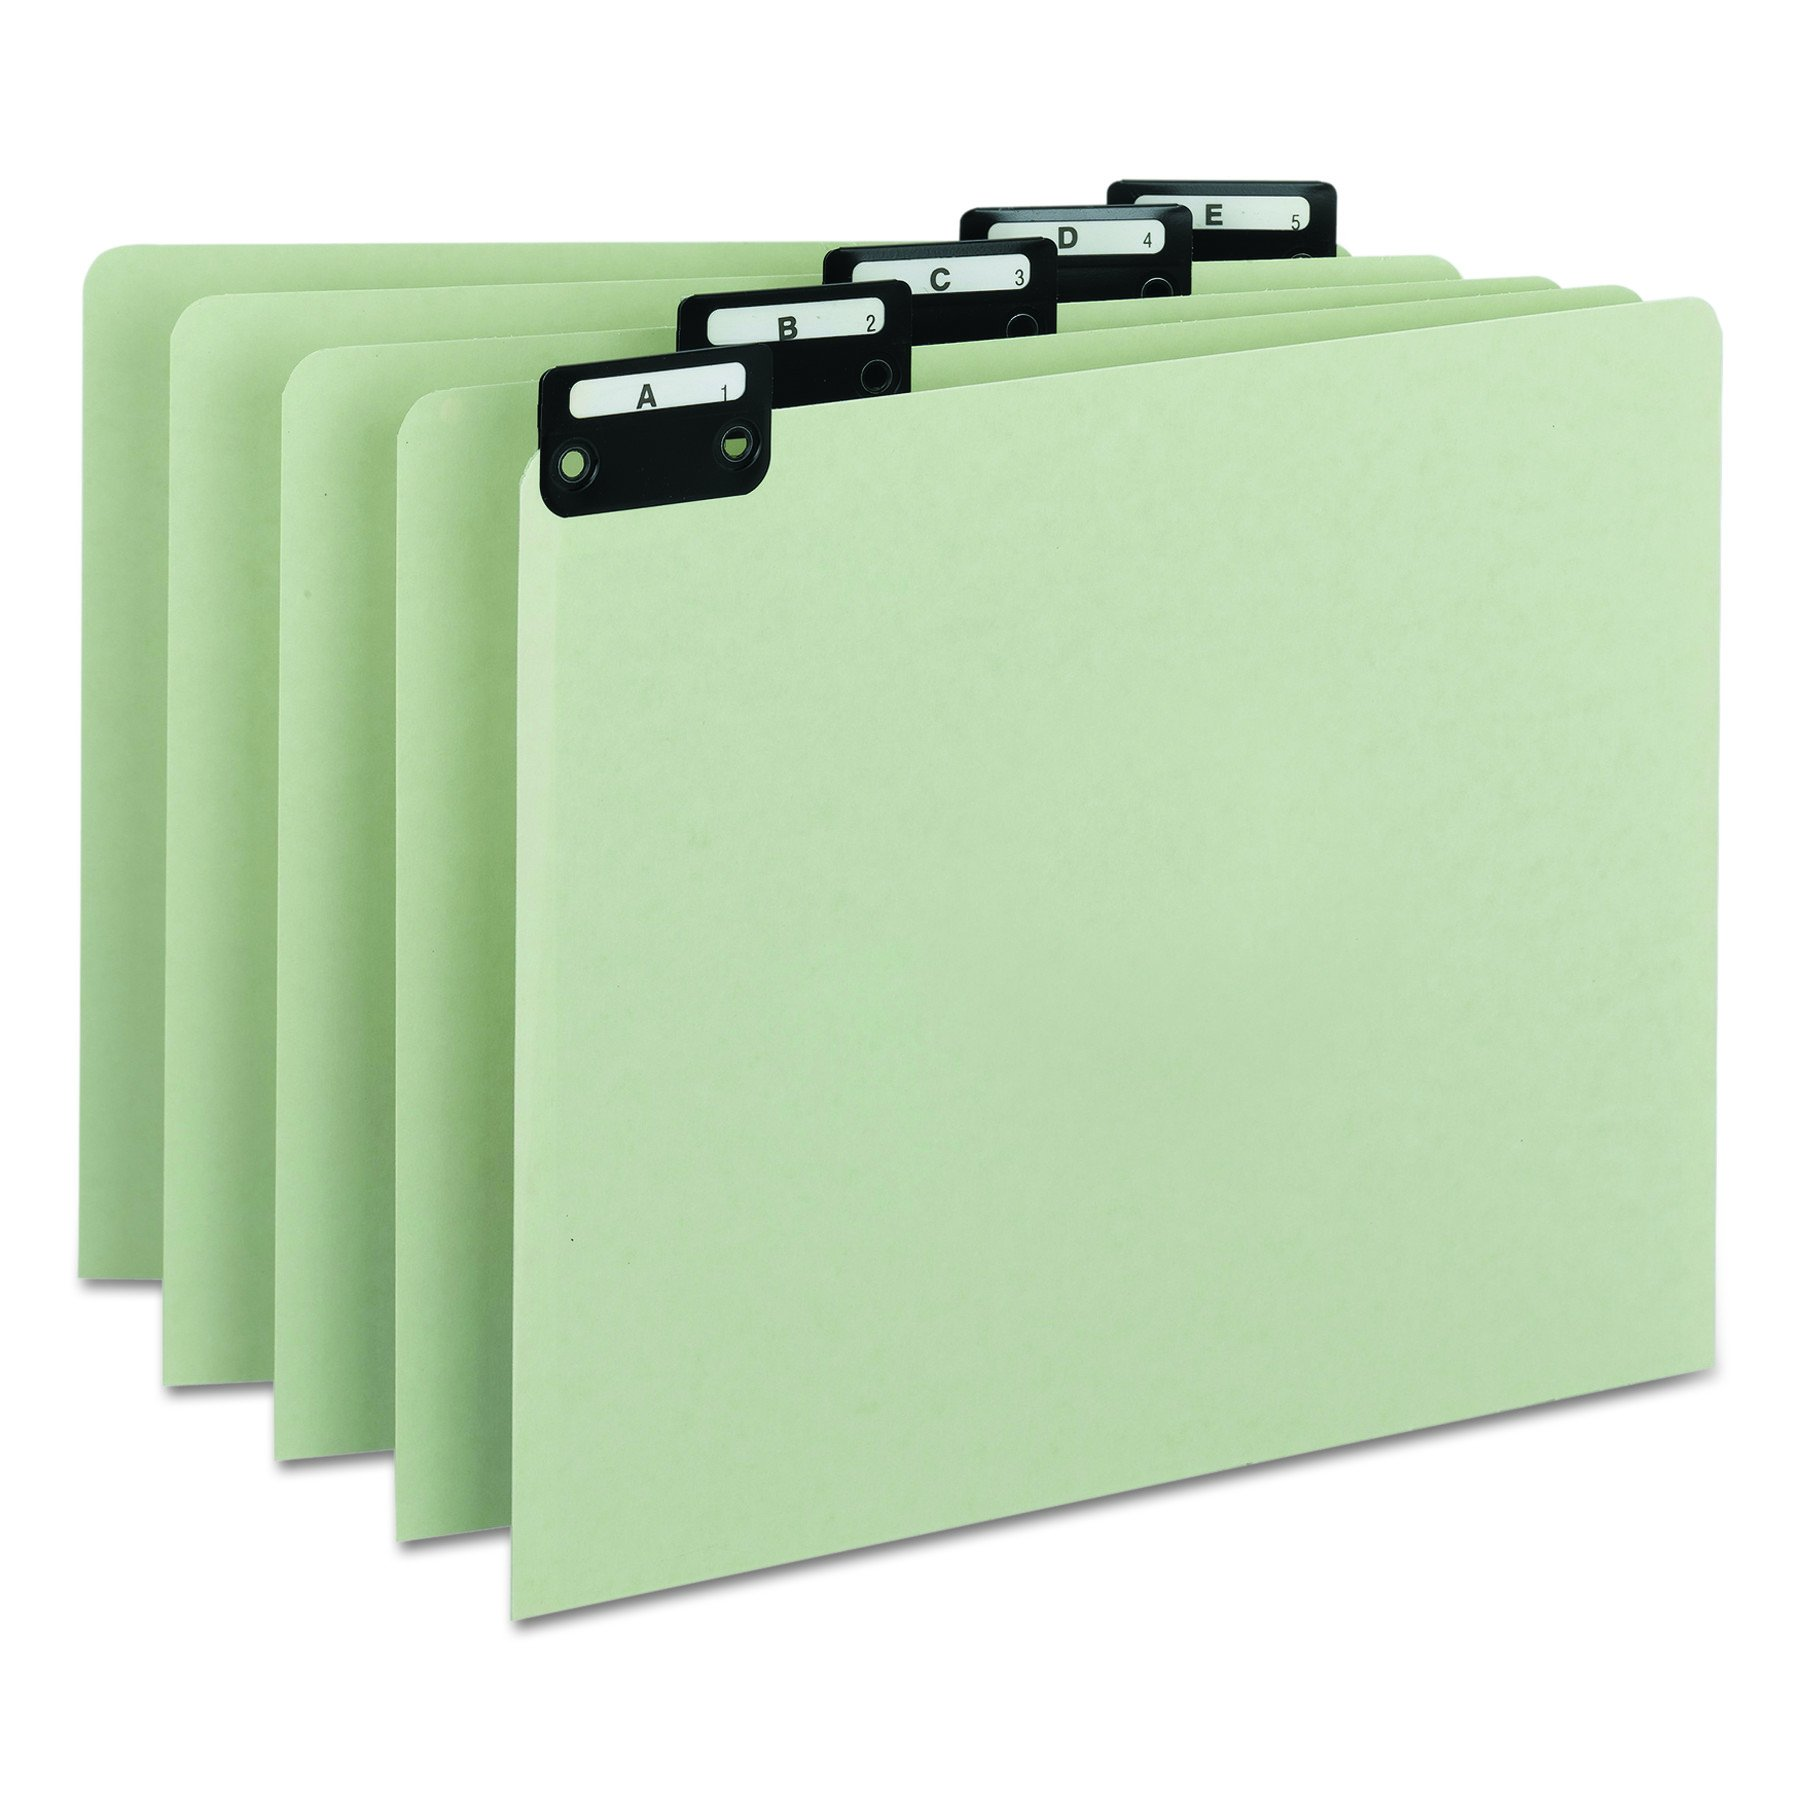 Smead 100% Recycled Pressboard File Guides, Flat Metal 1/5-Cut Tab with Insert (A-Z), Letter Size, Gray/Green, Set of 25 (50576)